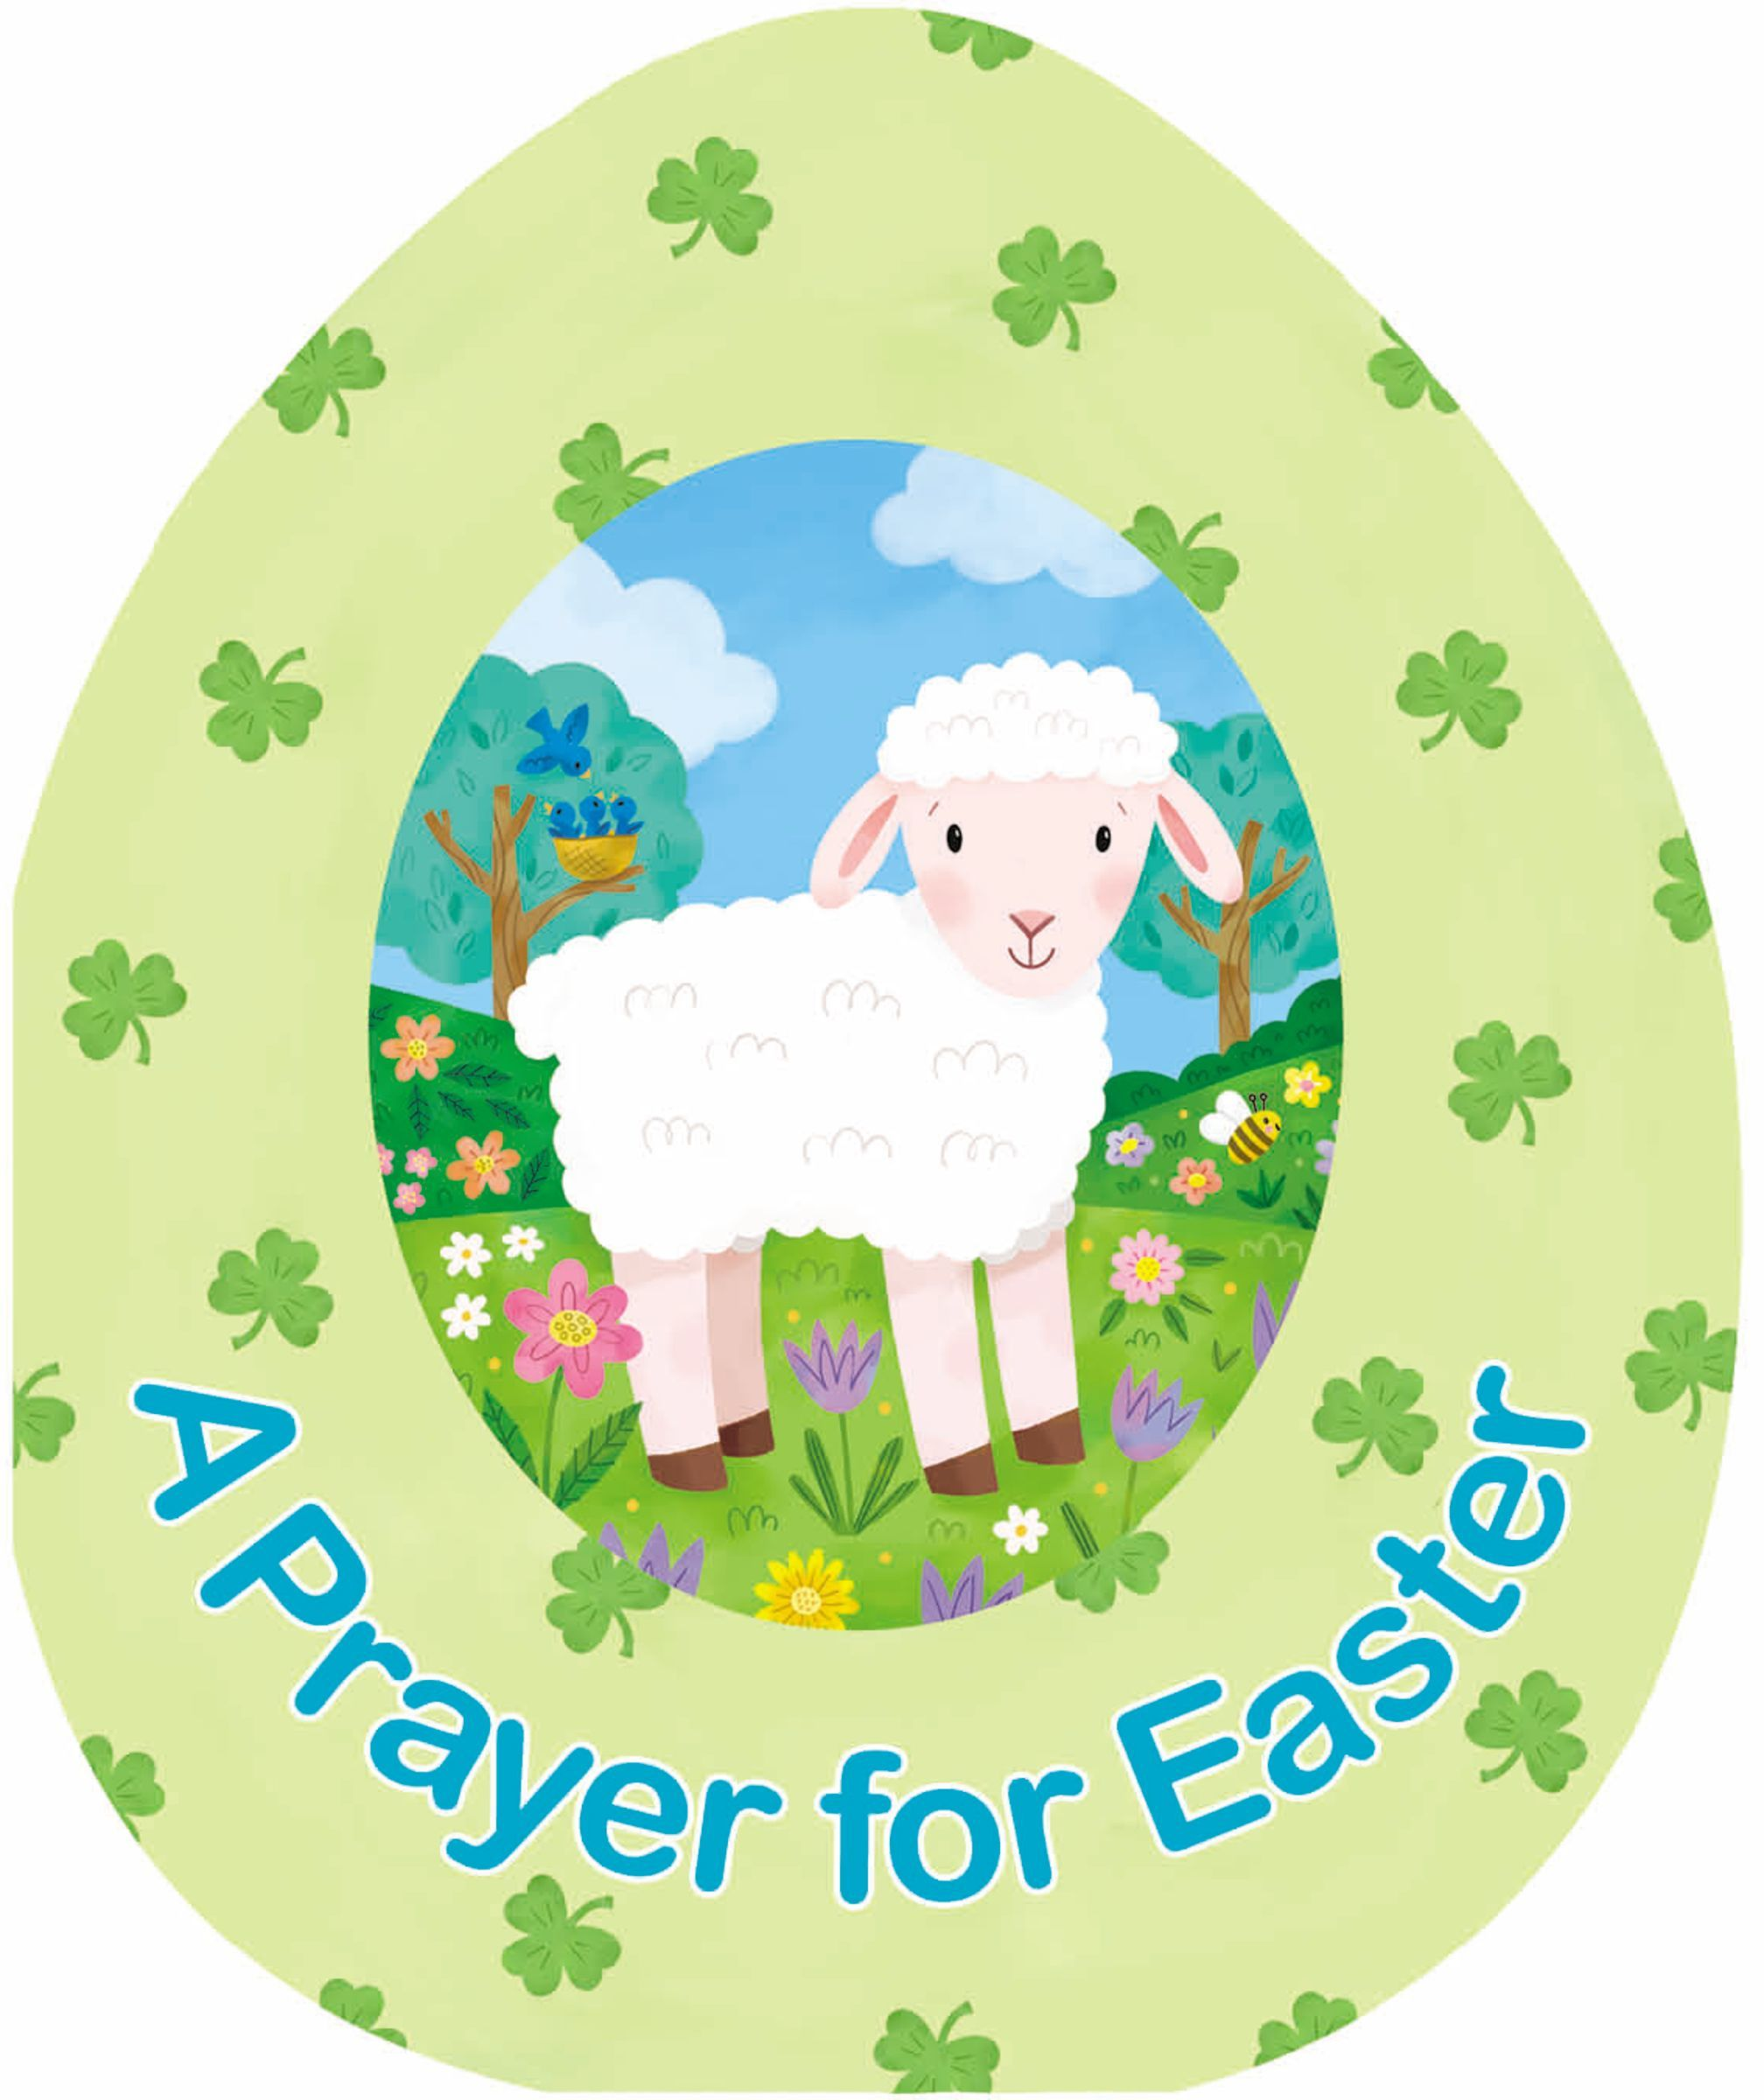 A Prayer for Easter